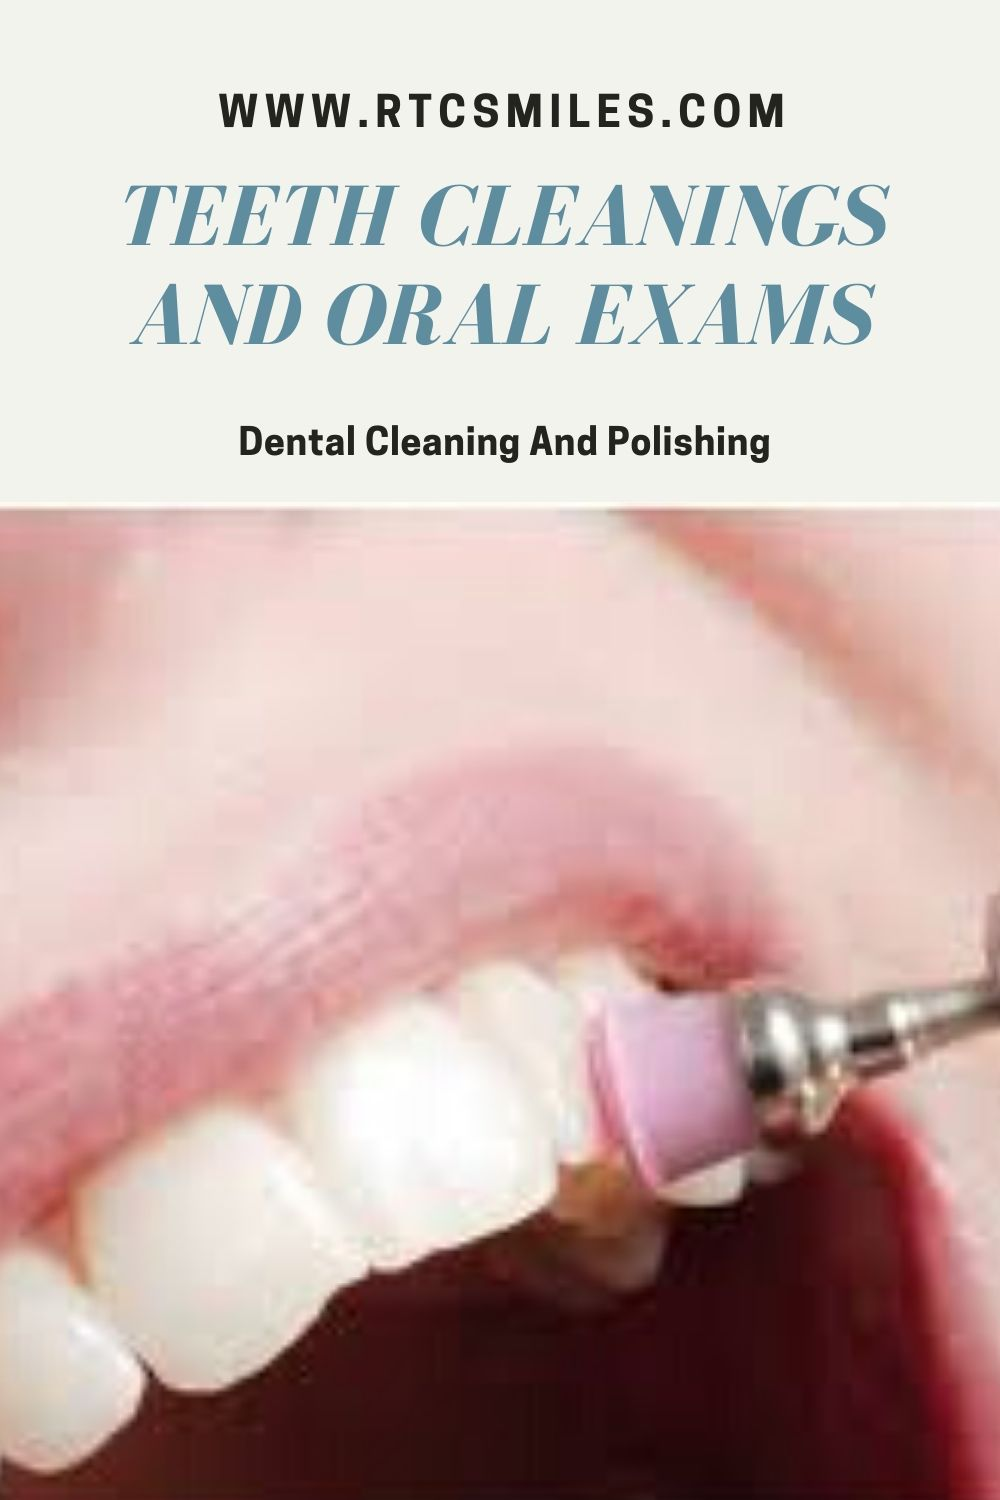 Dental Cleaning And Polishing in 2020 Dental cleaning